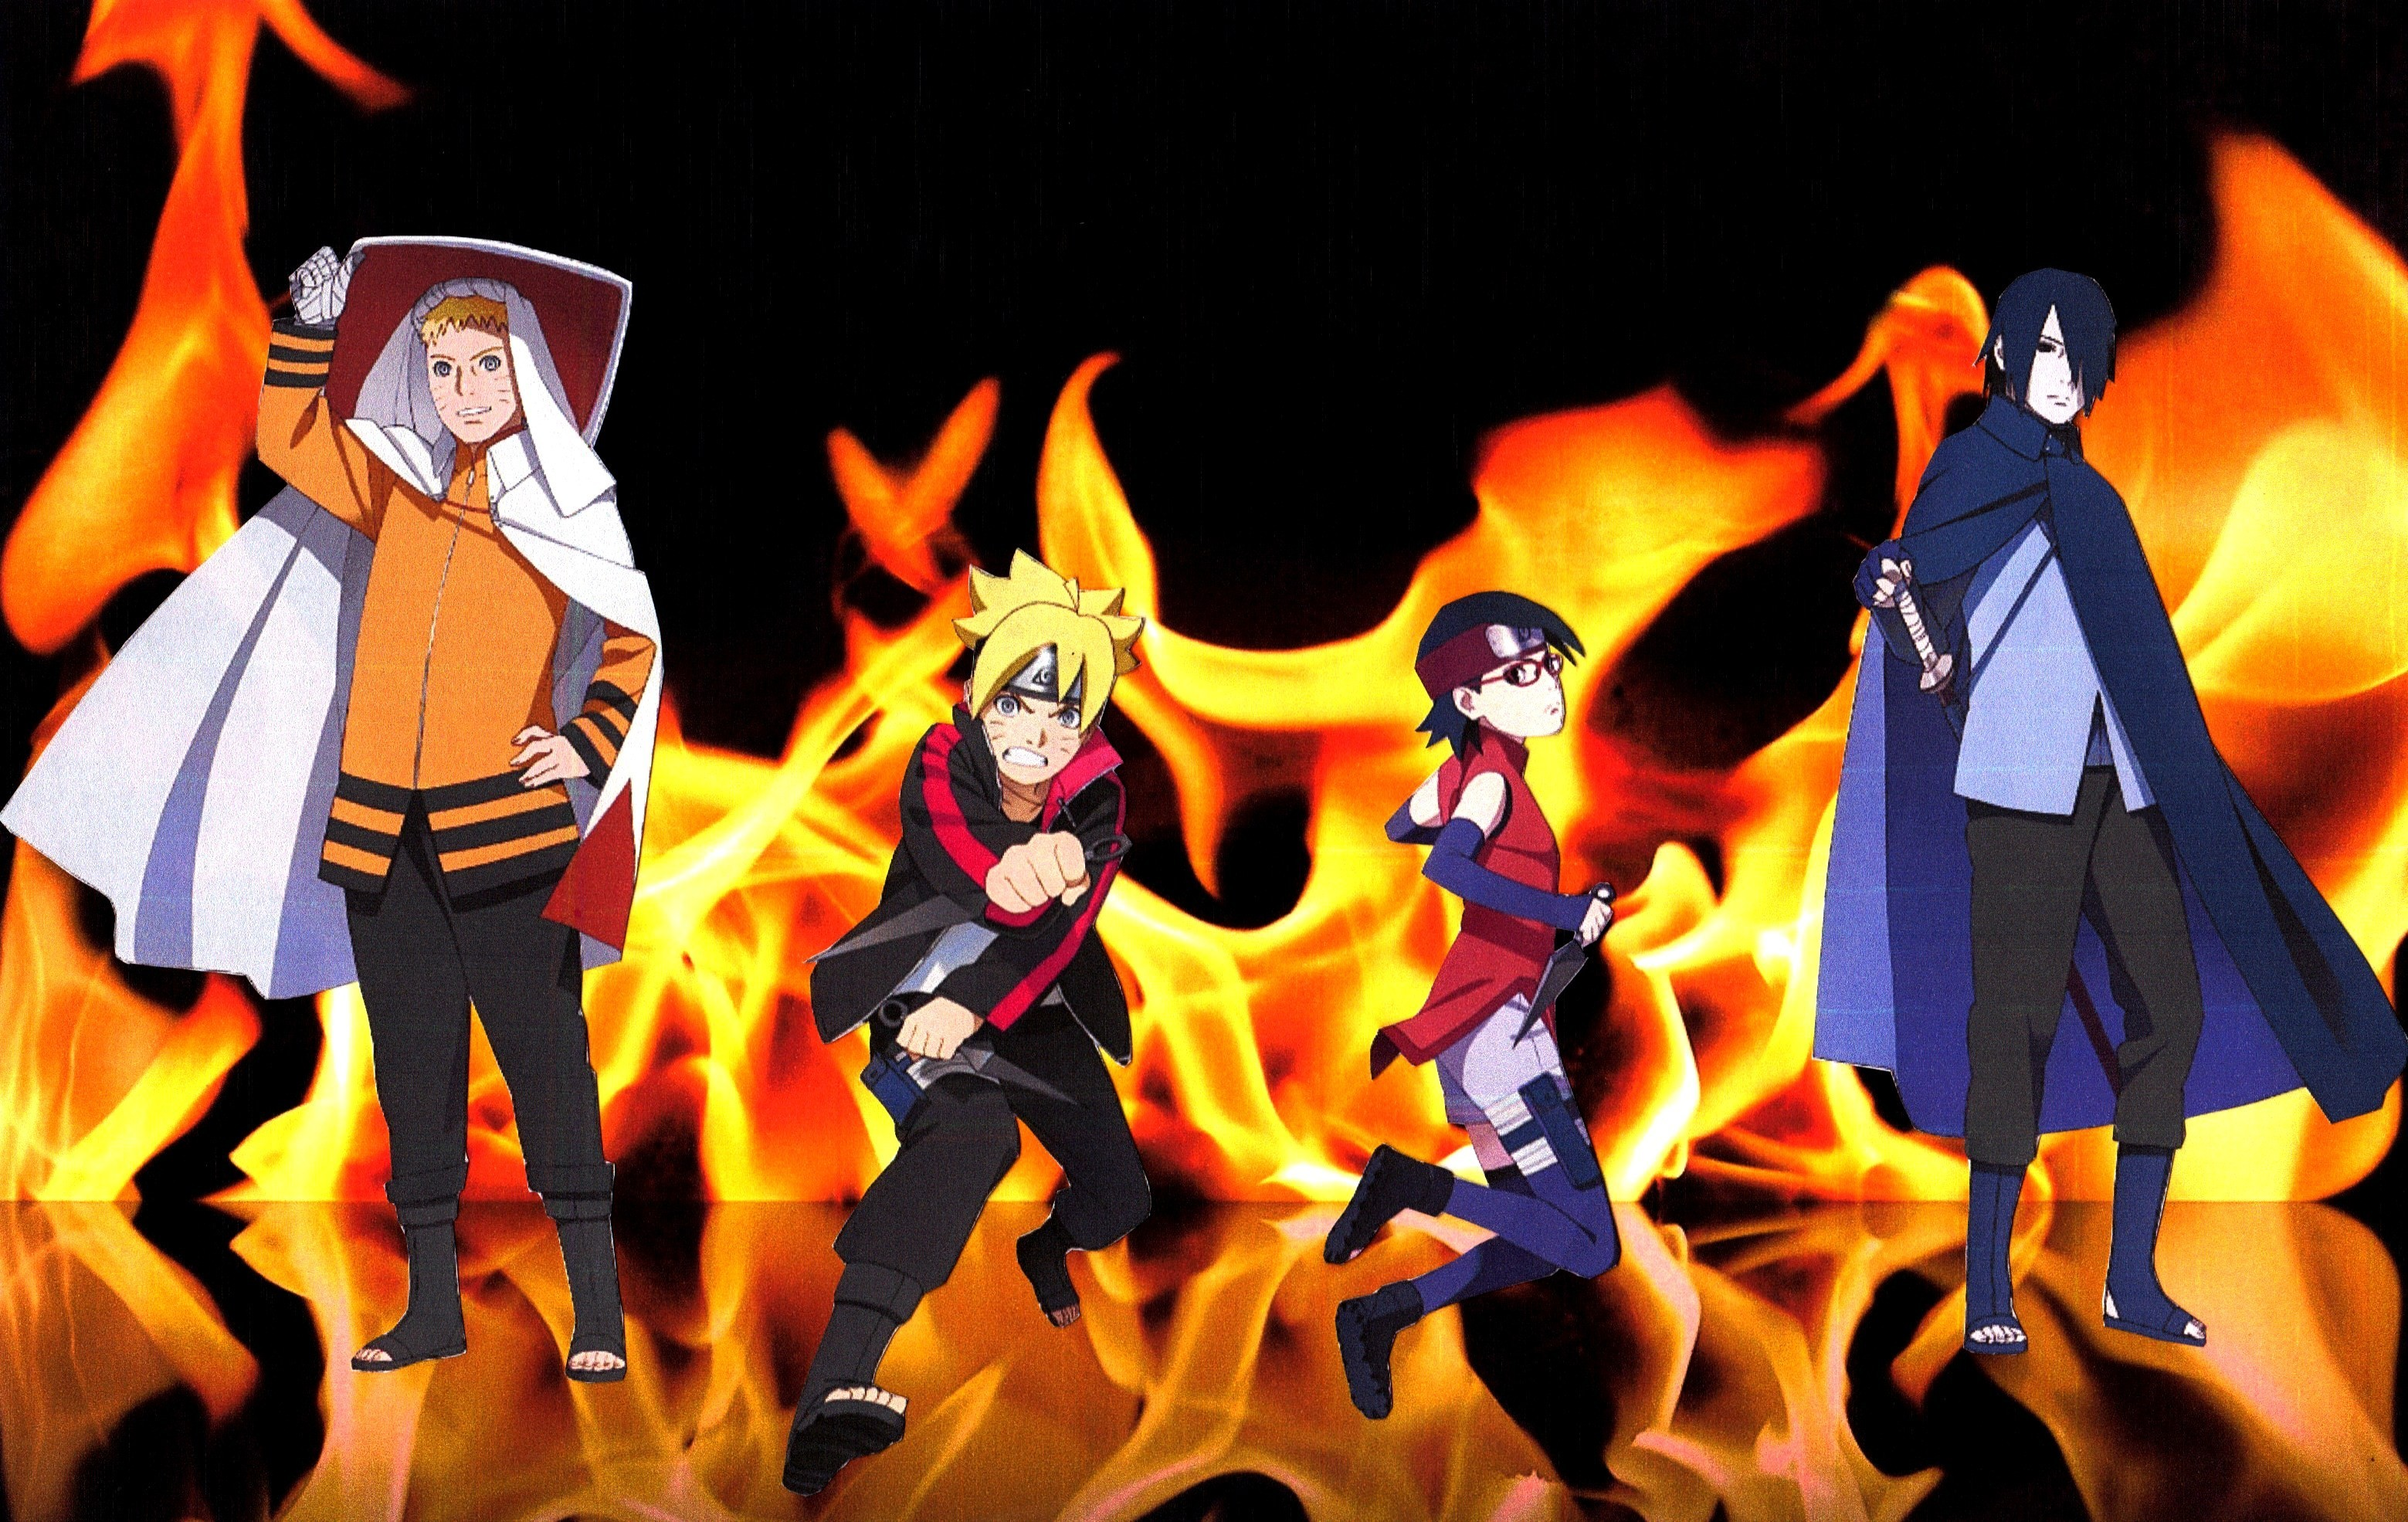 3118x1971 naruto sasuke boruto sarada fire wallpaper 2 by weissdrum on